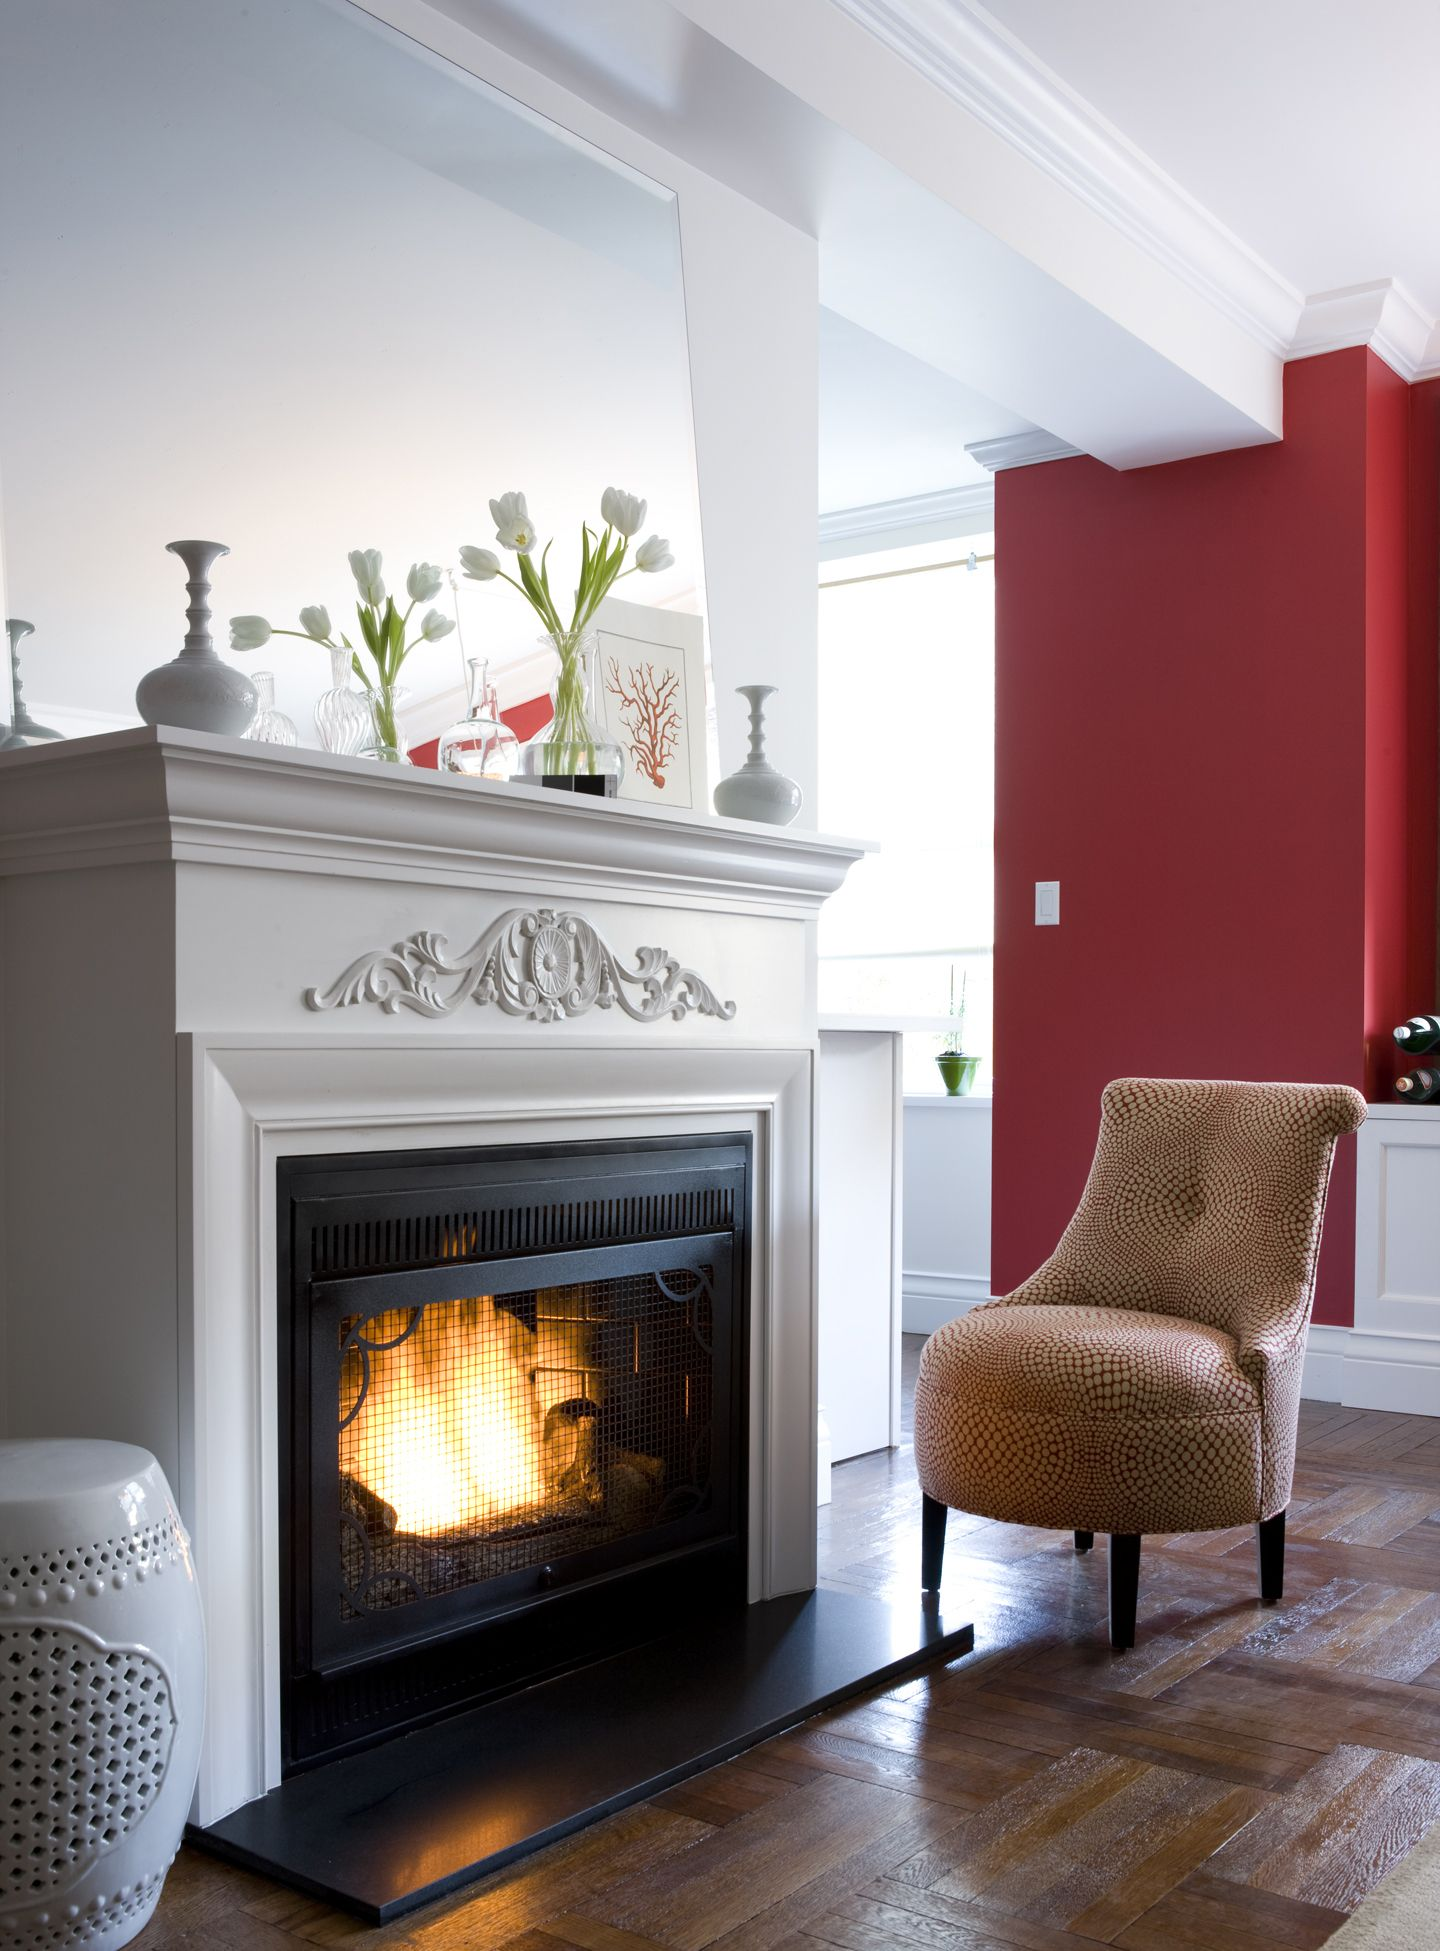 Pin By Hearthcabinet Ventless Fireplaces On Hearthcabinet Ventless Fi